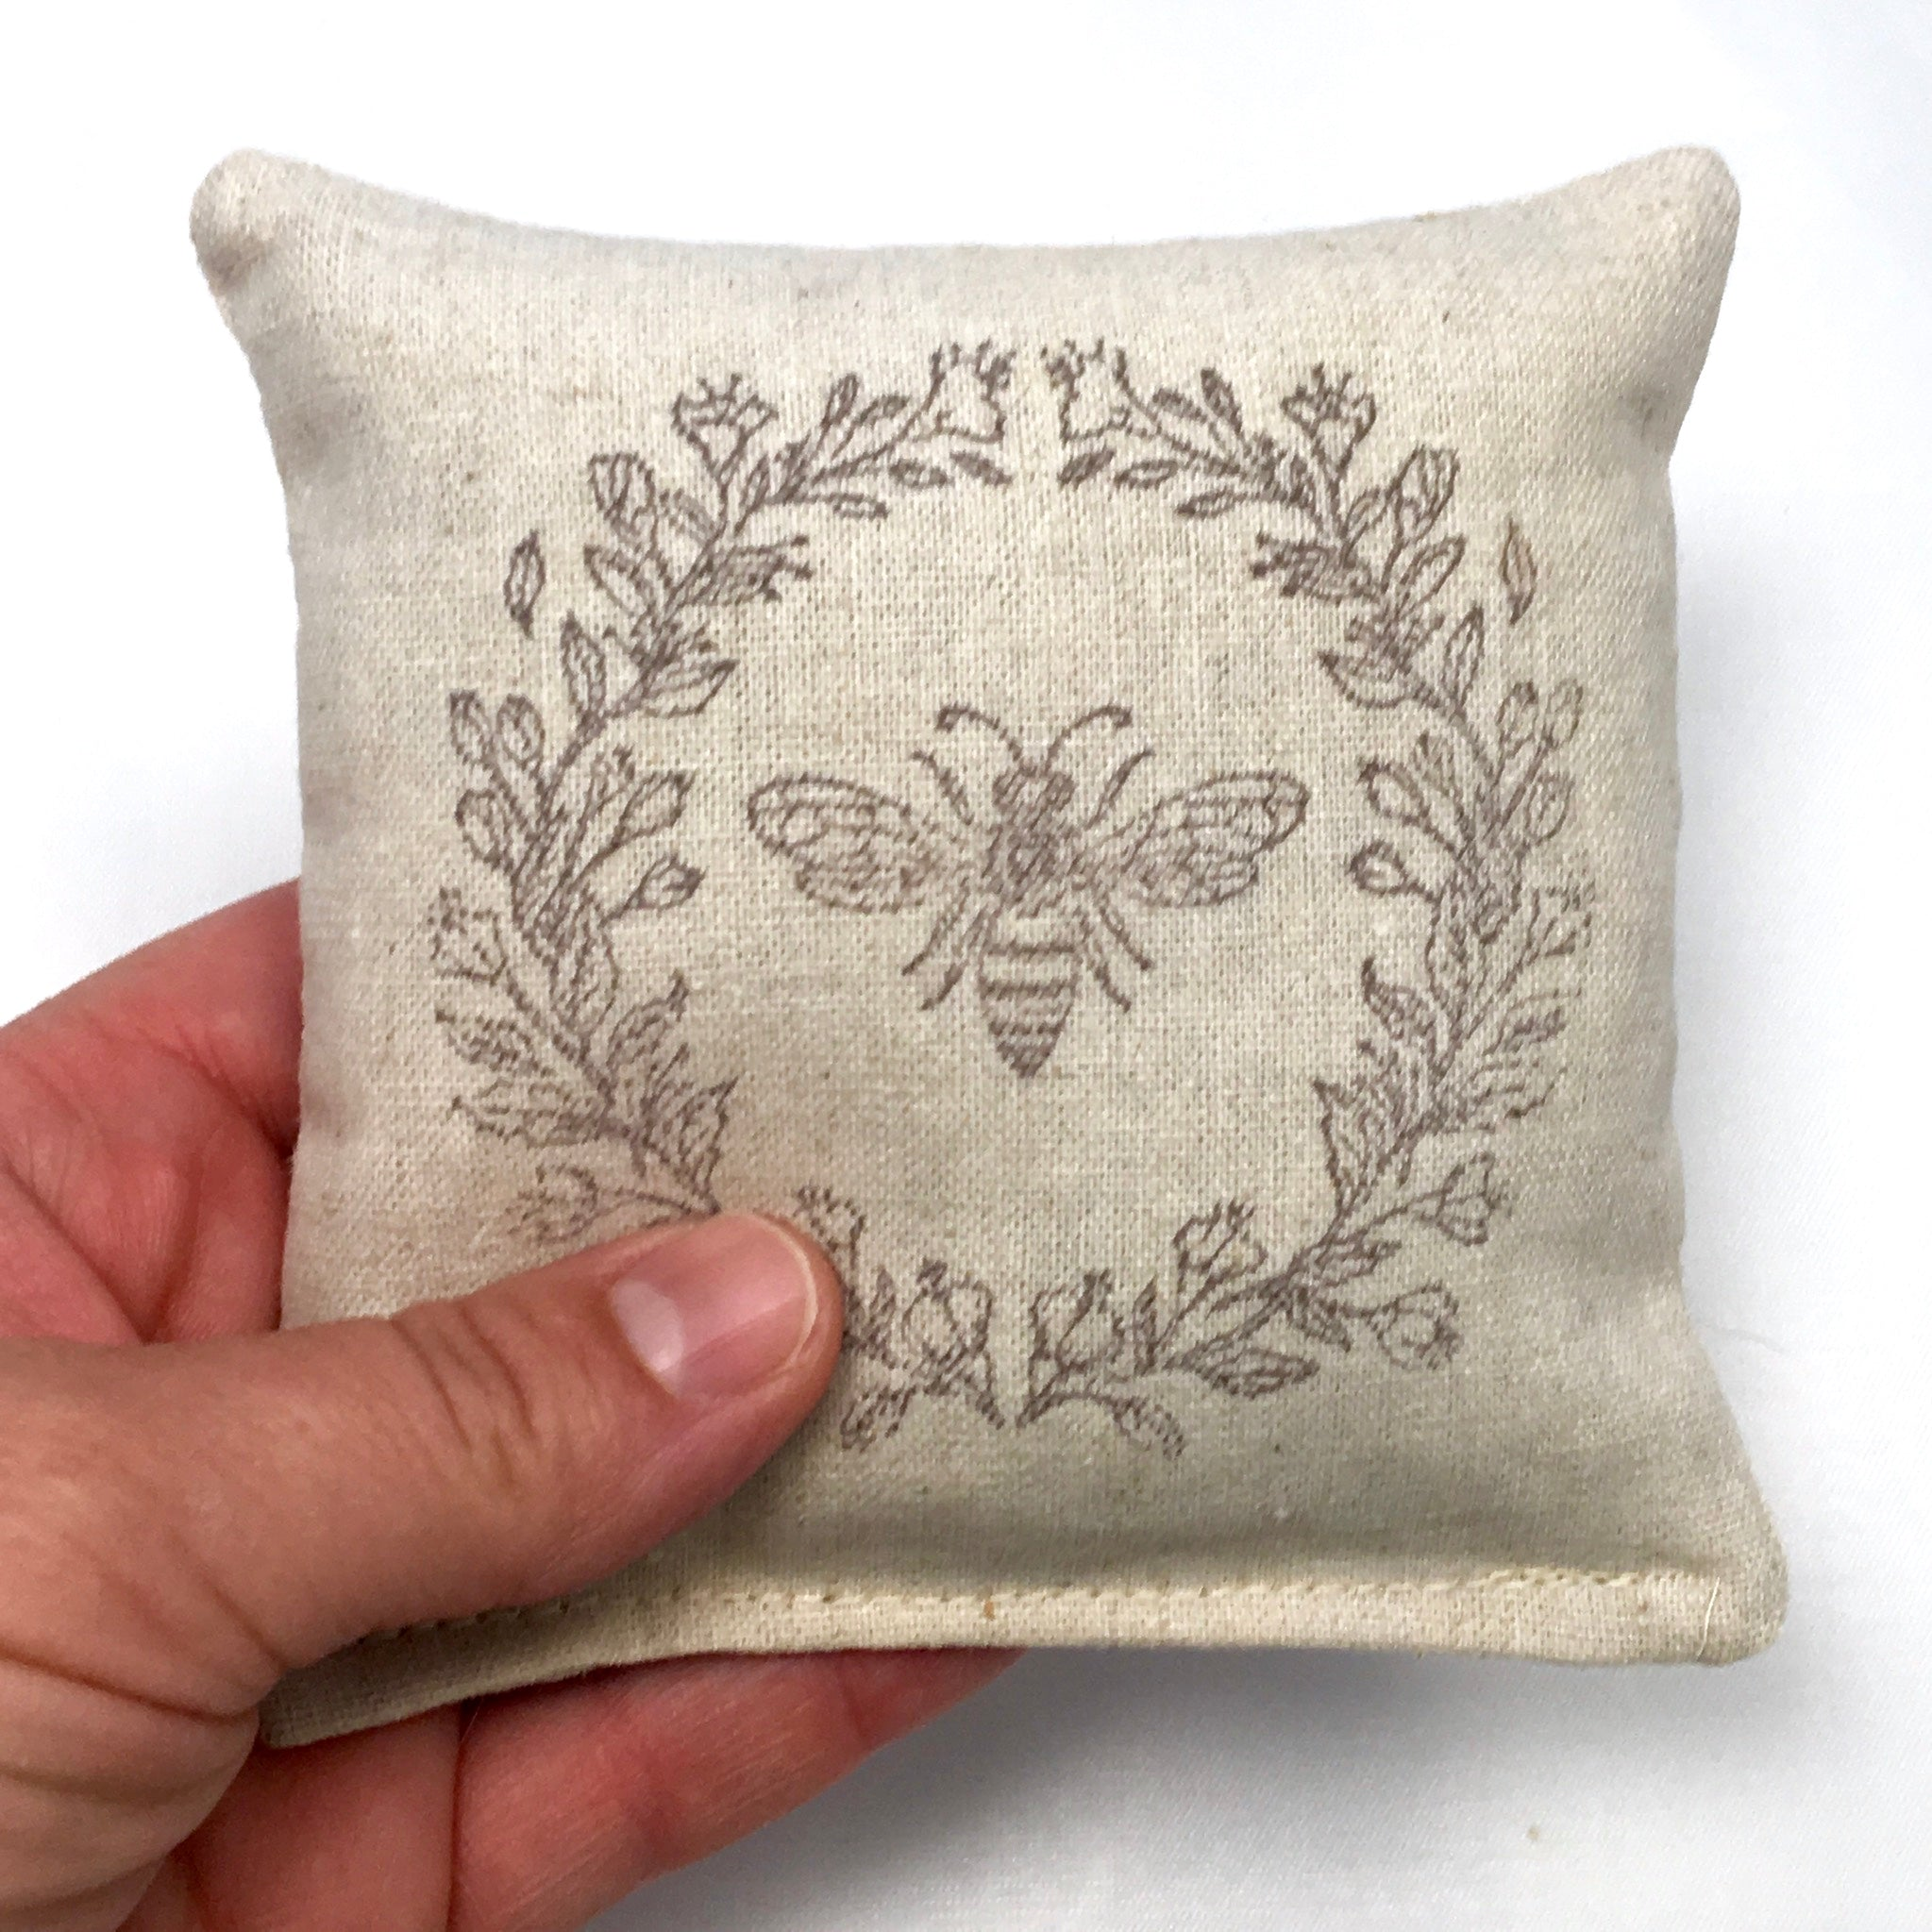 Bee Design Scented Pillow - Choice of Ink Color and Scent